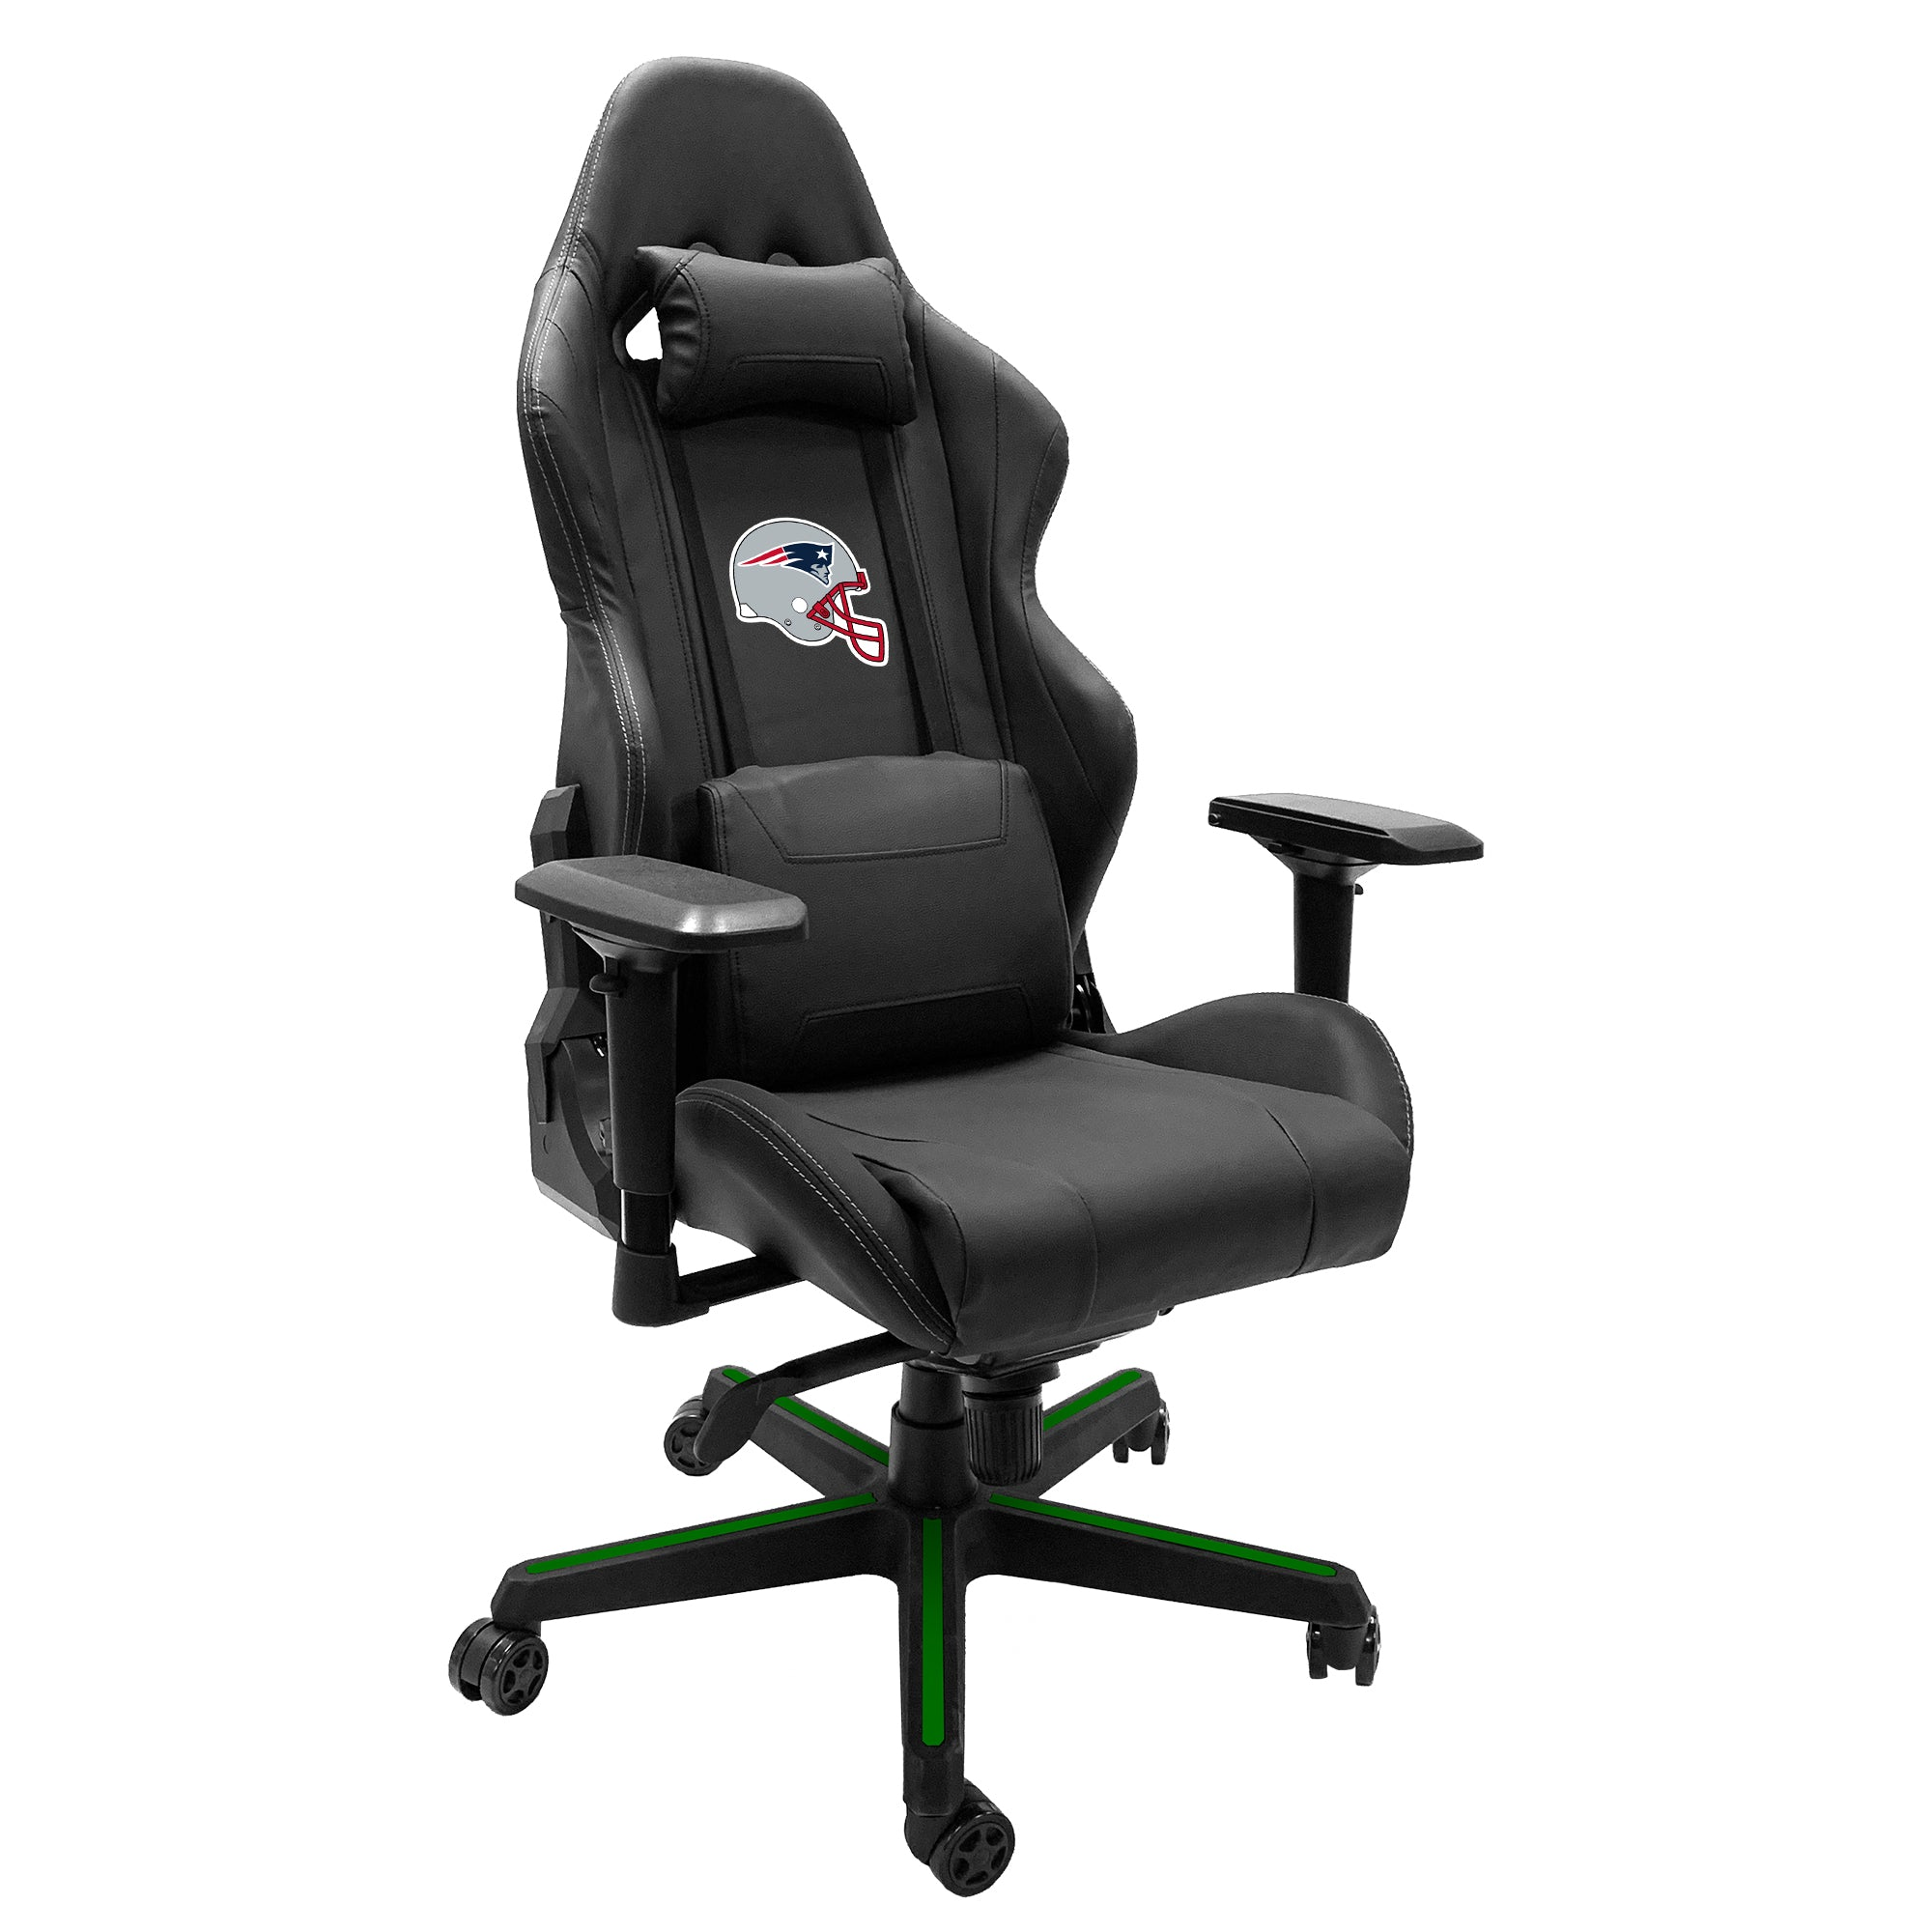 Xpression Gaming Chair with  New England Patriots Helmet Logo